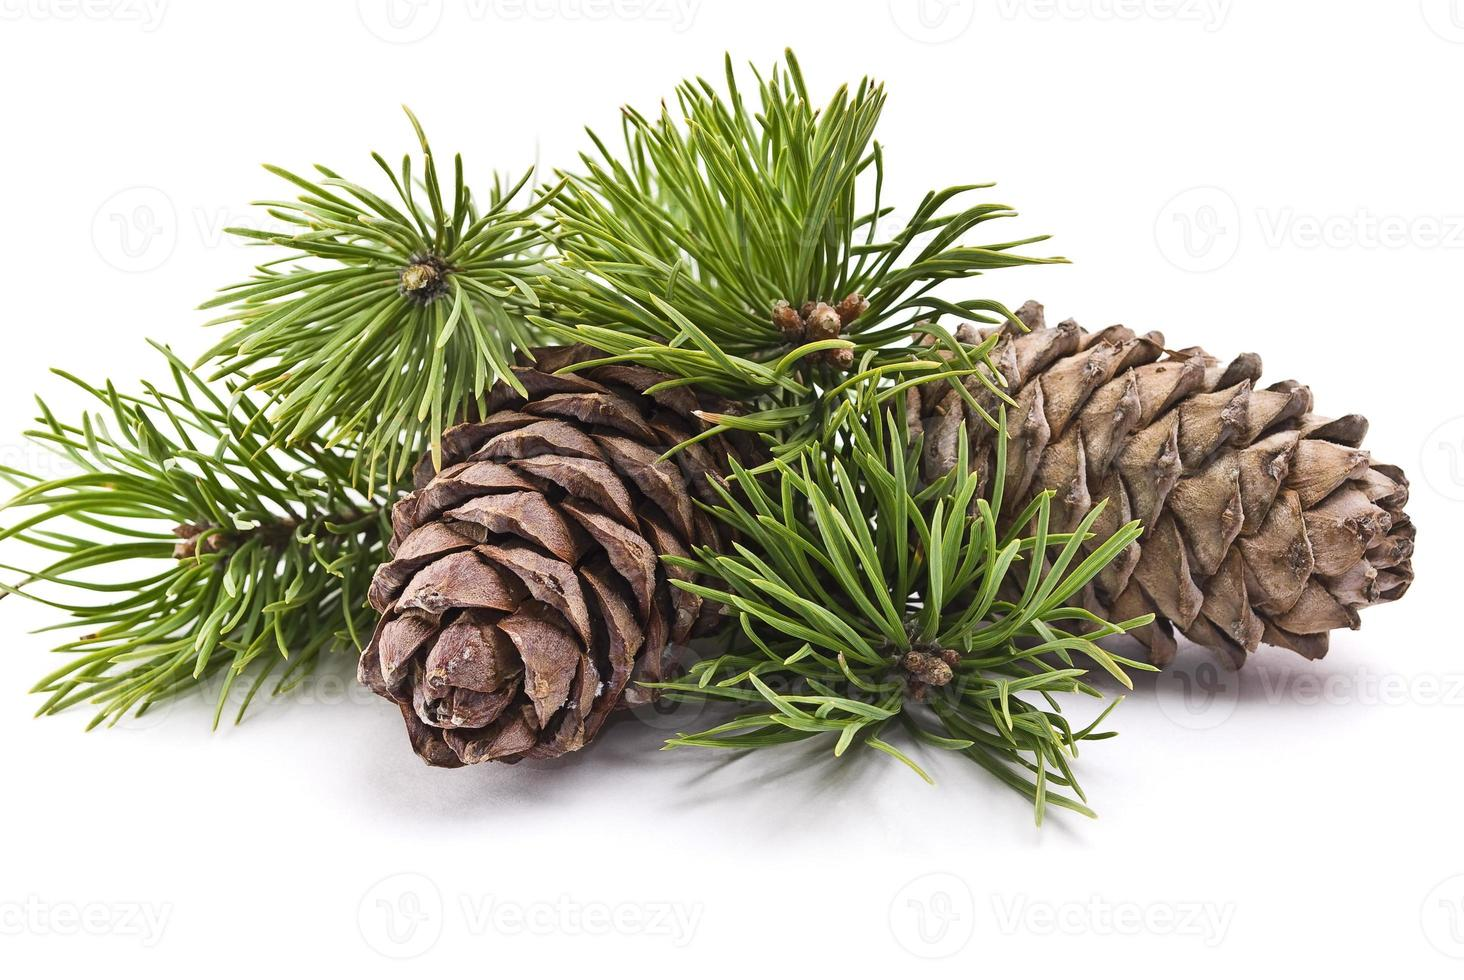 Siberian pine cones and green branches on white background photo